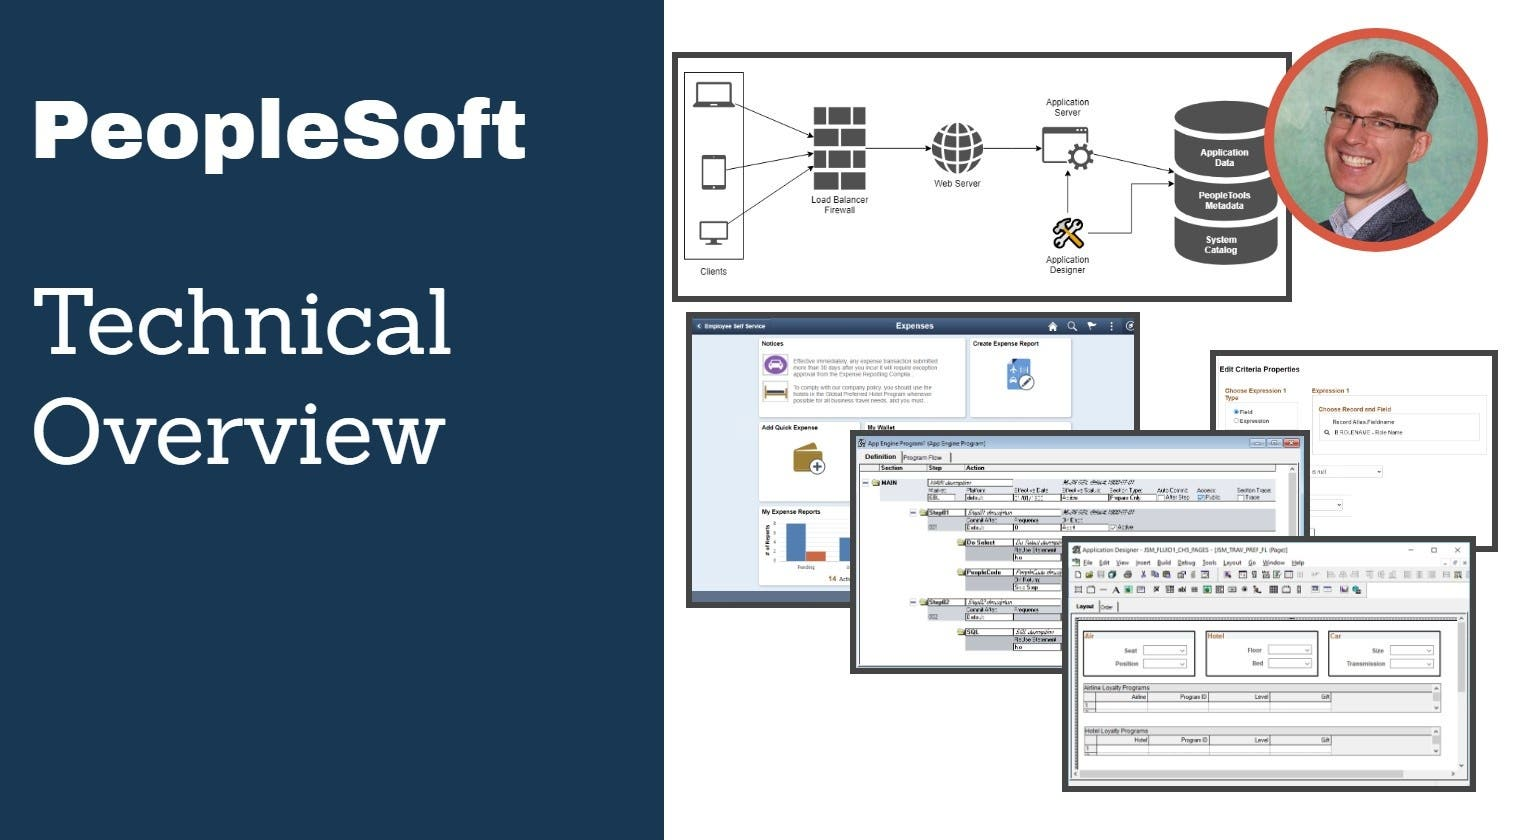 PeopleSoft Technical Overview